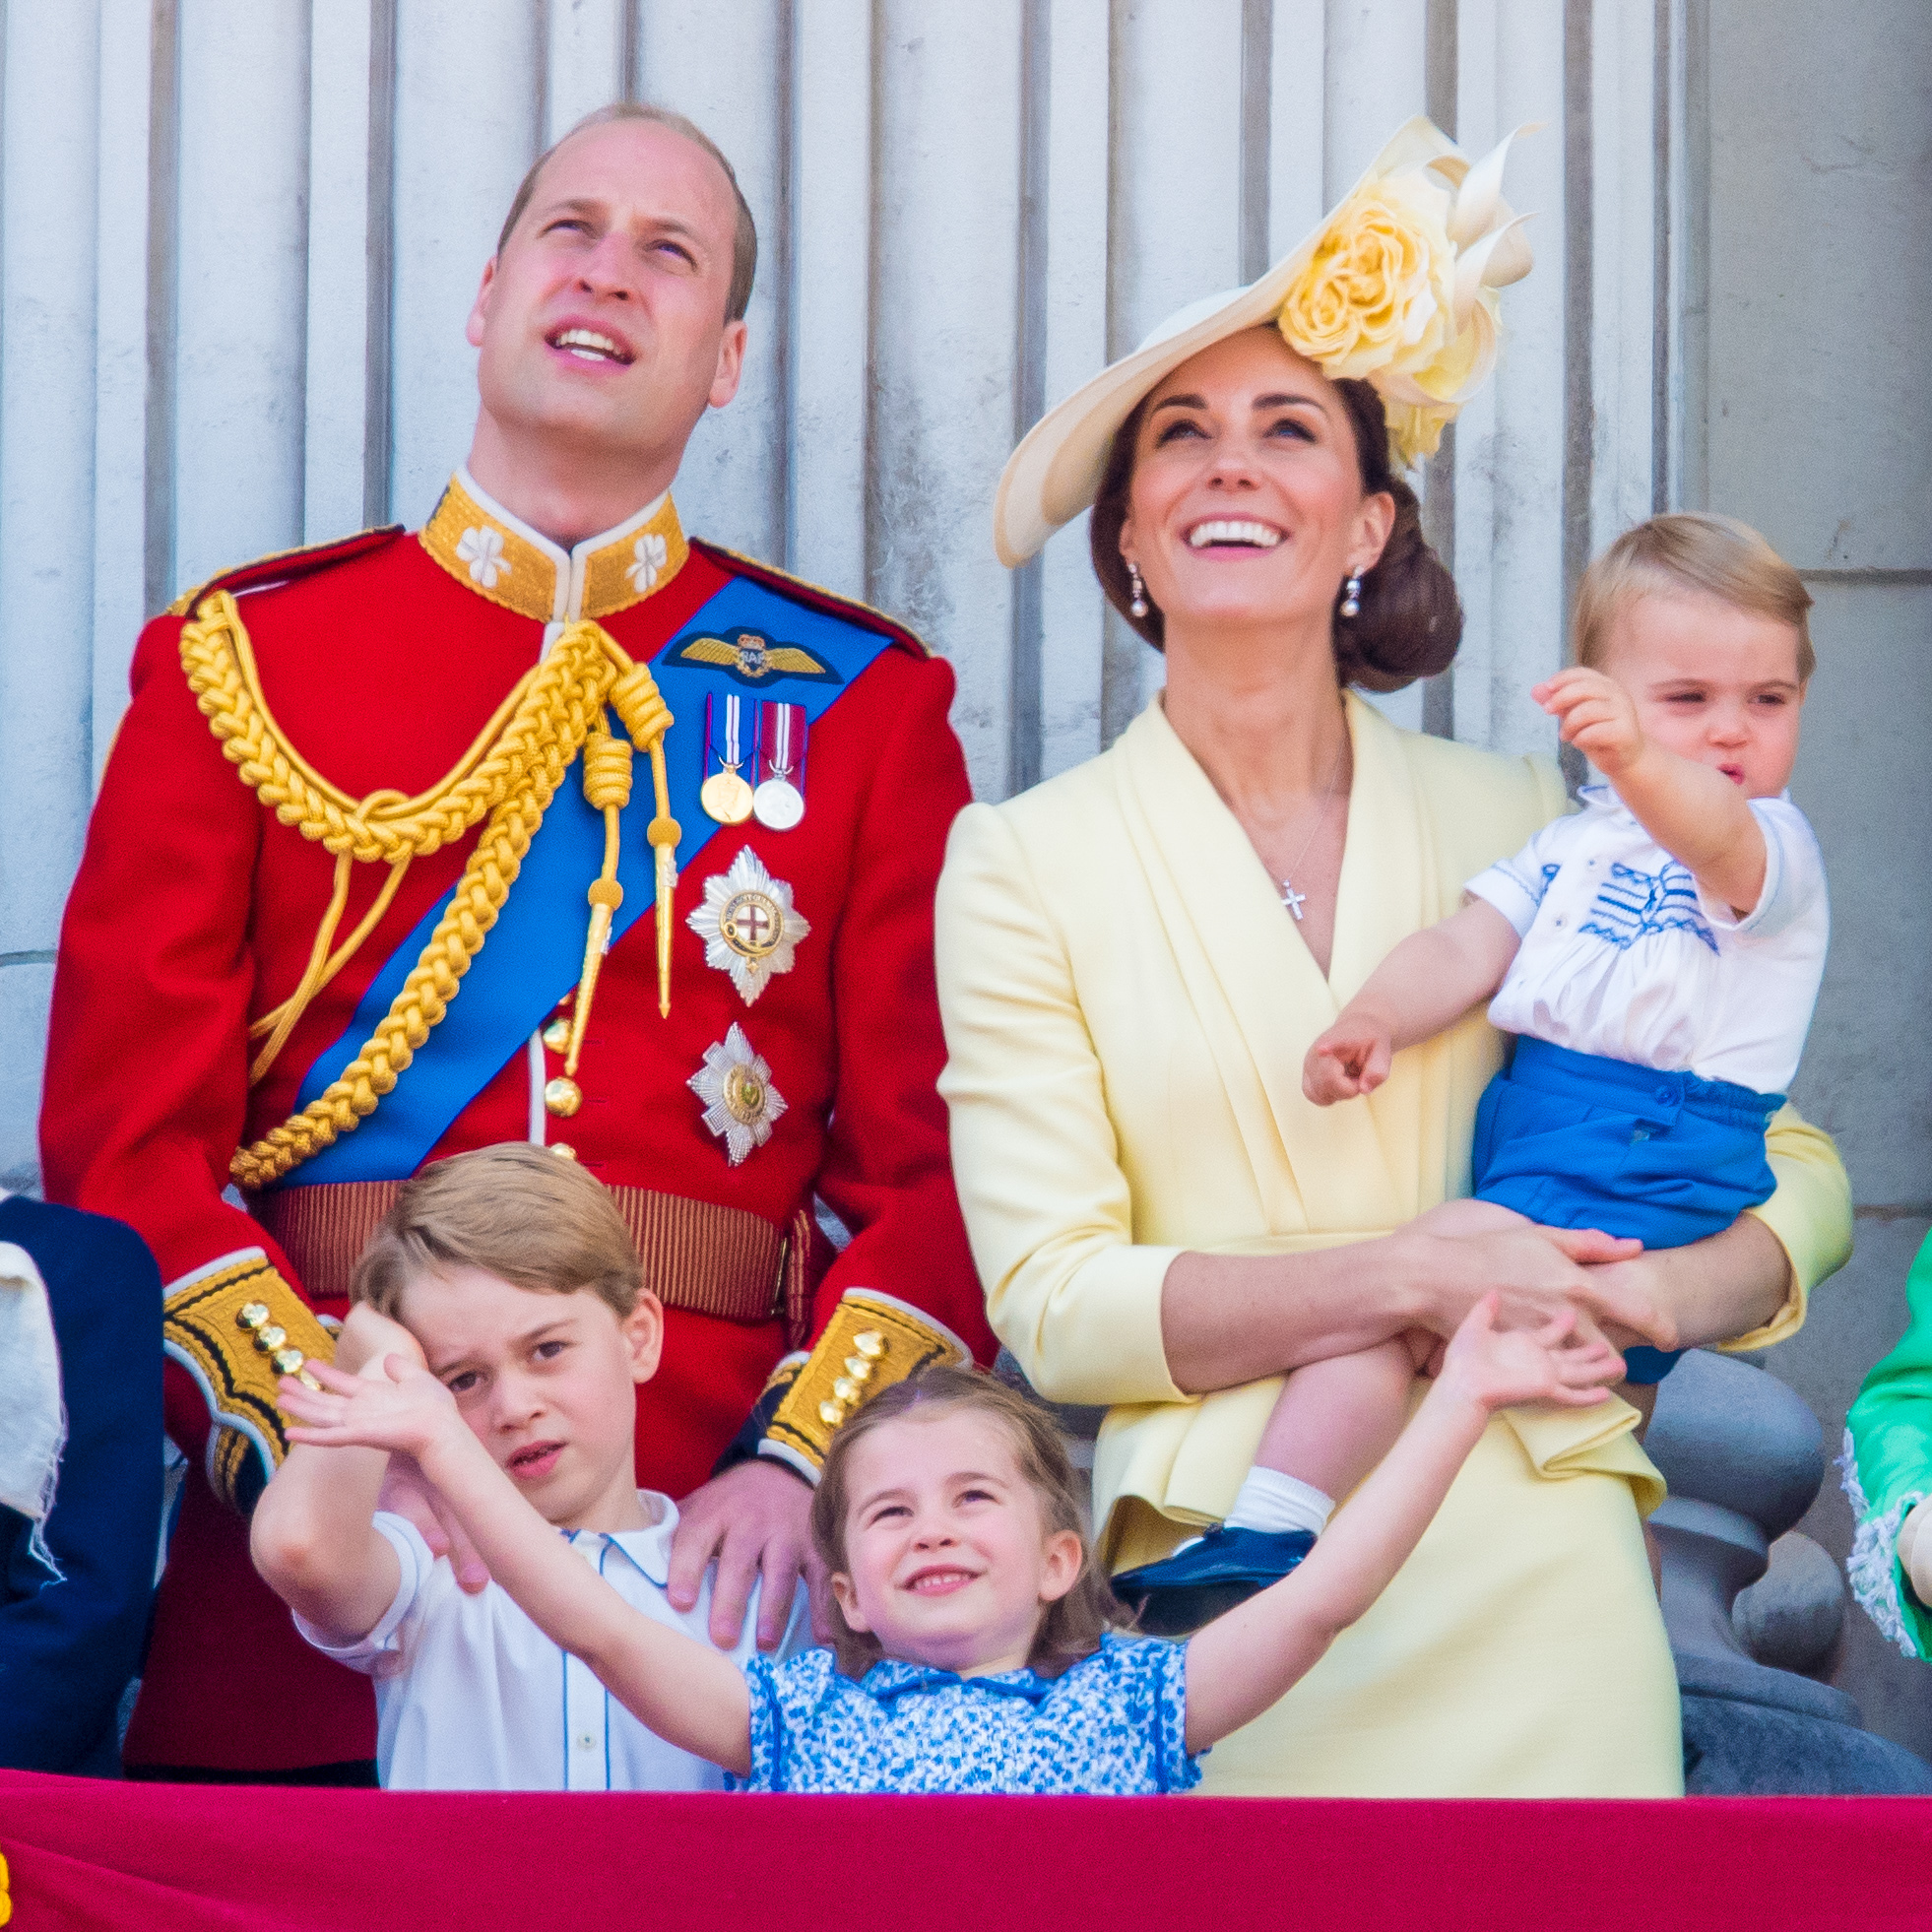 Prince William, Catherine Duchess of Cambridge, Prince George, Princess Charlotte and Prince Louis during Trooping the Colour ceremony, marking the monarch's official birthday, in London. (Photo by DPPA/Sipa USA)